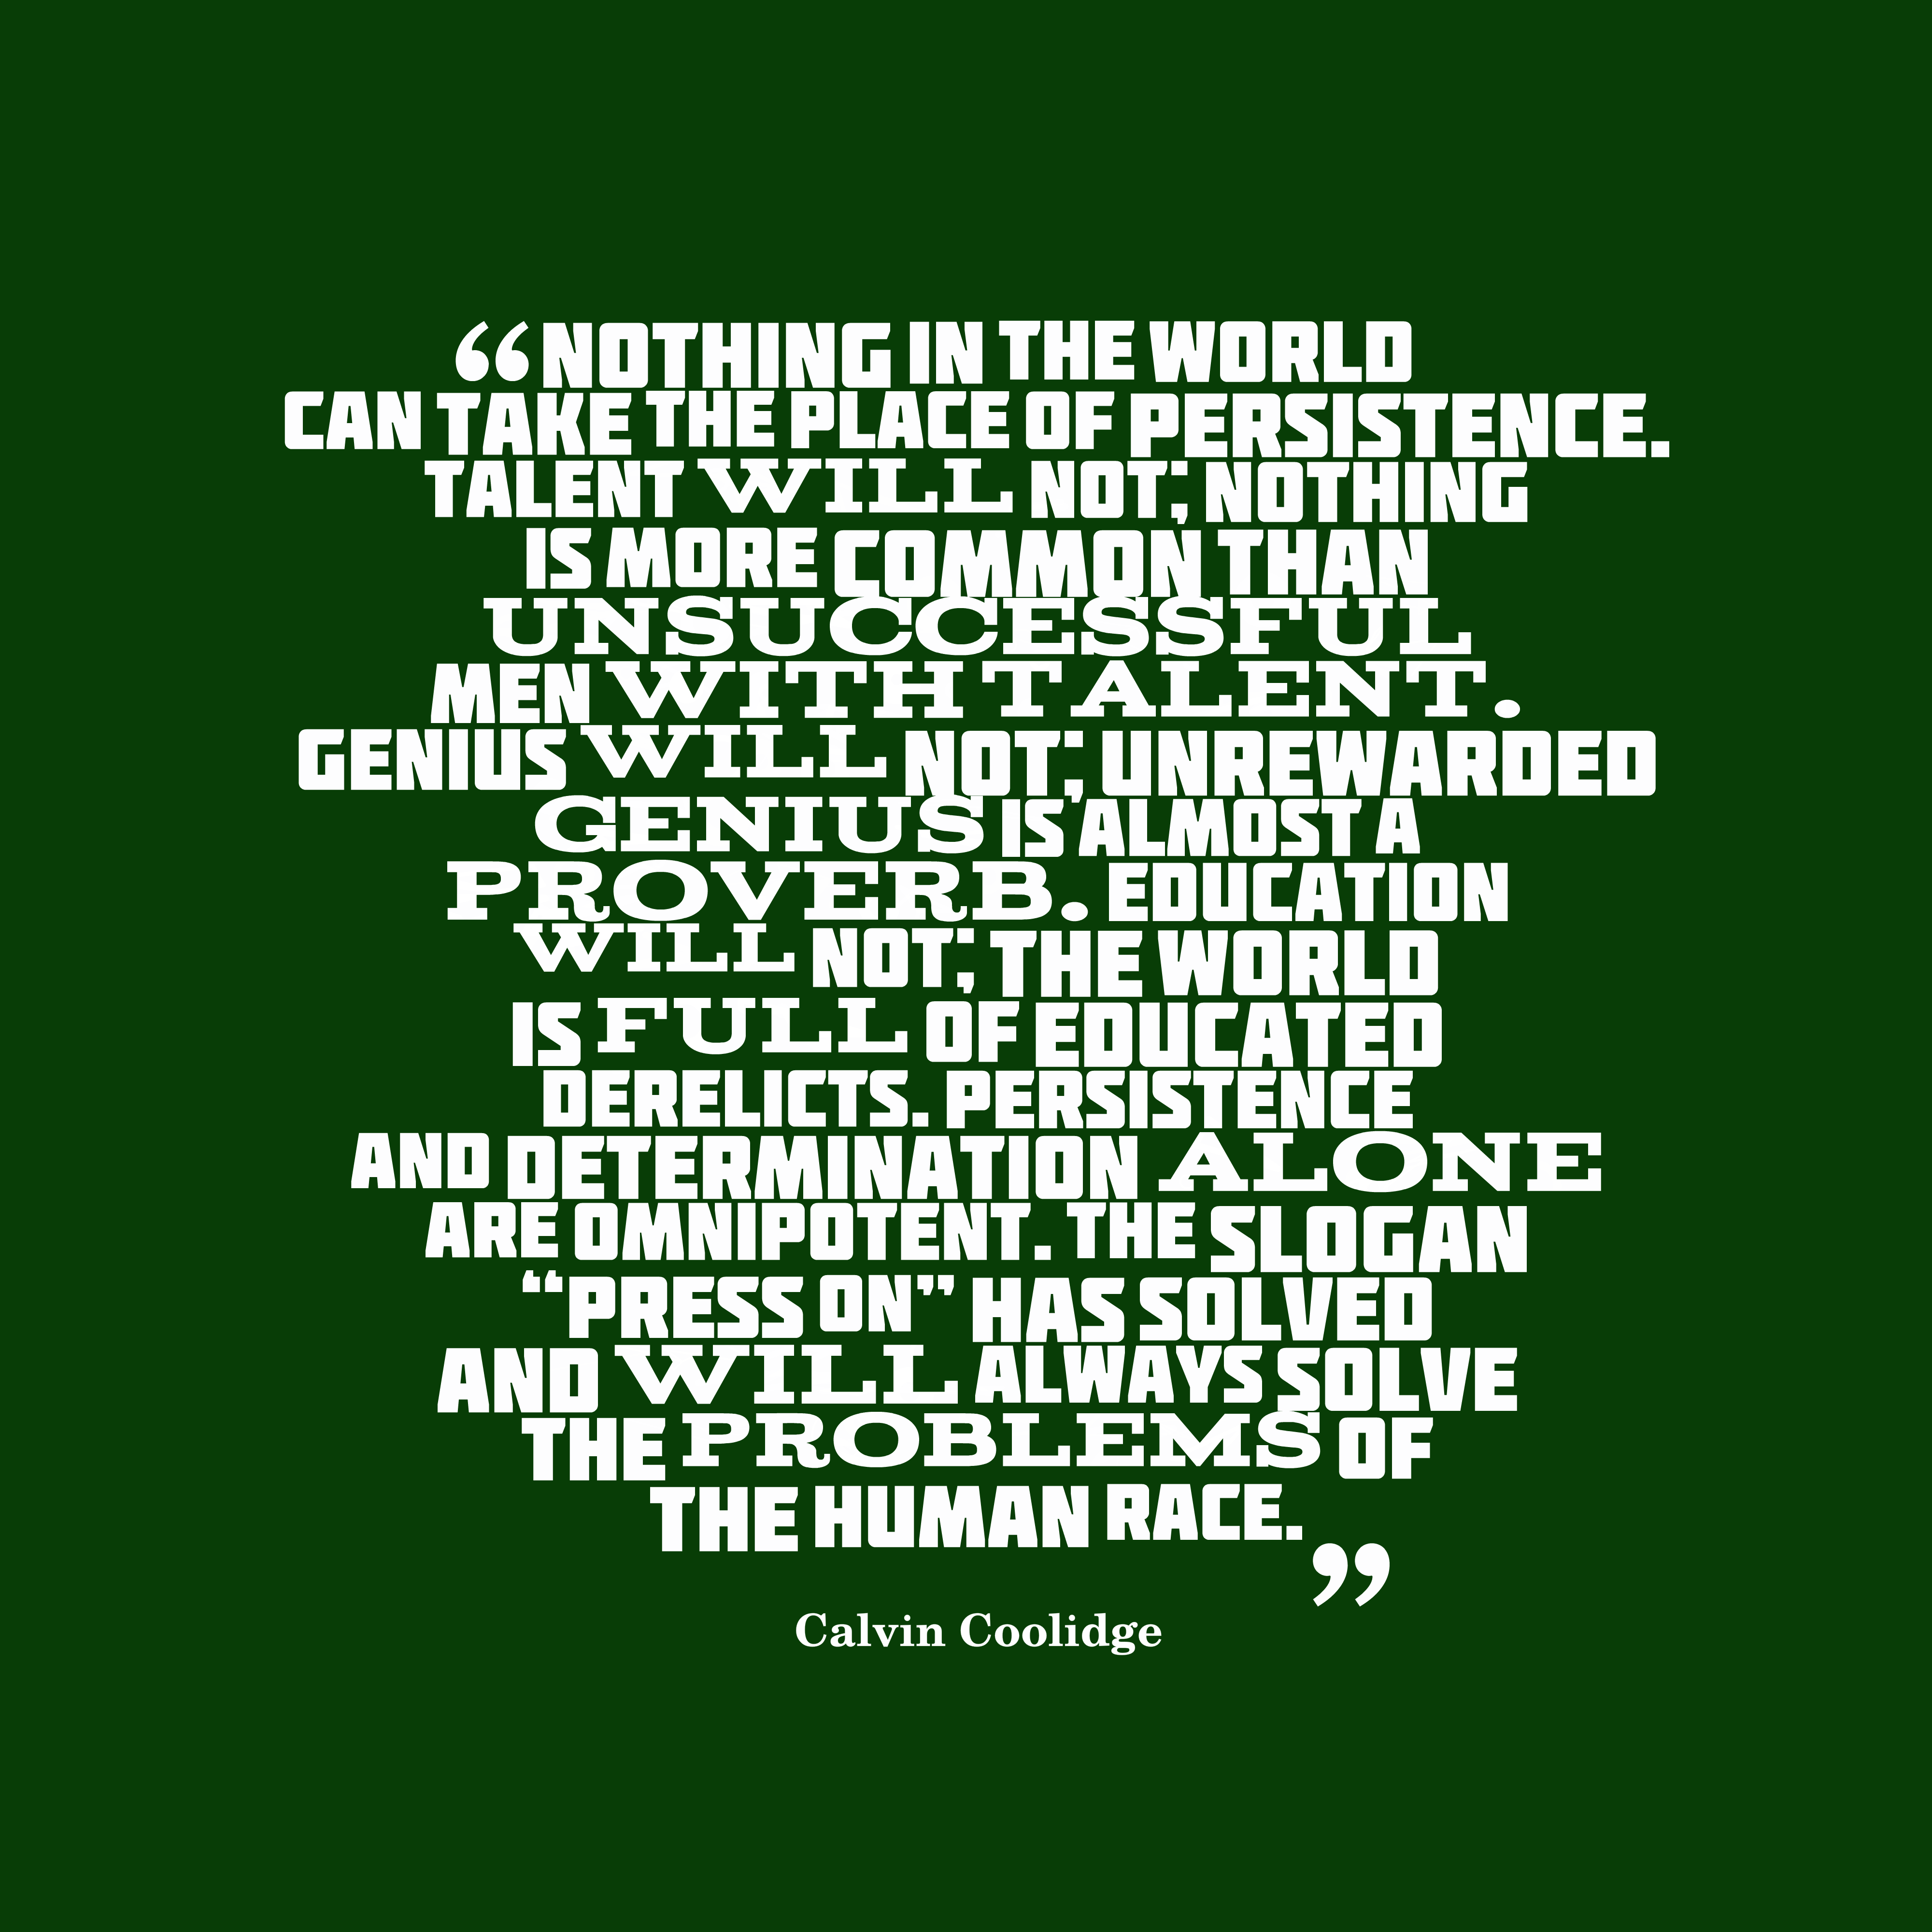 """Quotes image of Nothing in the world can take the place of Persistence. Talent will not; nothing is more common than unsuccessful men with talent. Genius will not; unrewarded genius is almost a proverb. Education will not; the world is full of educated derelicts. Persistence and Determination alone are omnipotent. The slogan """"Press On"""" has solved and will always solve the problems of the human race."""